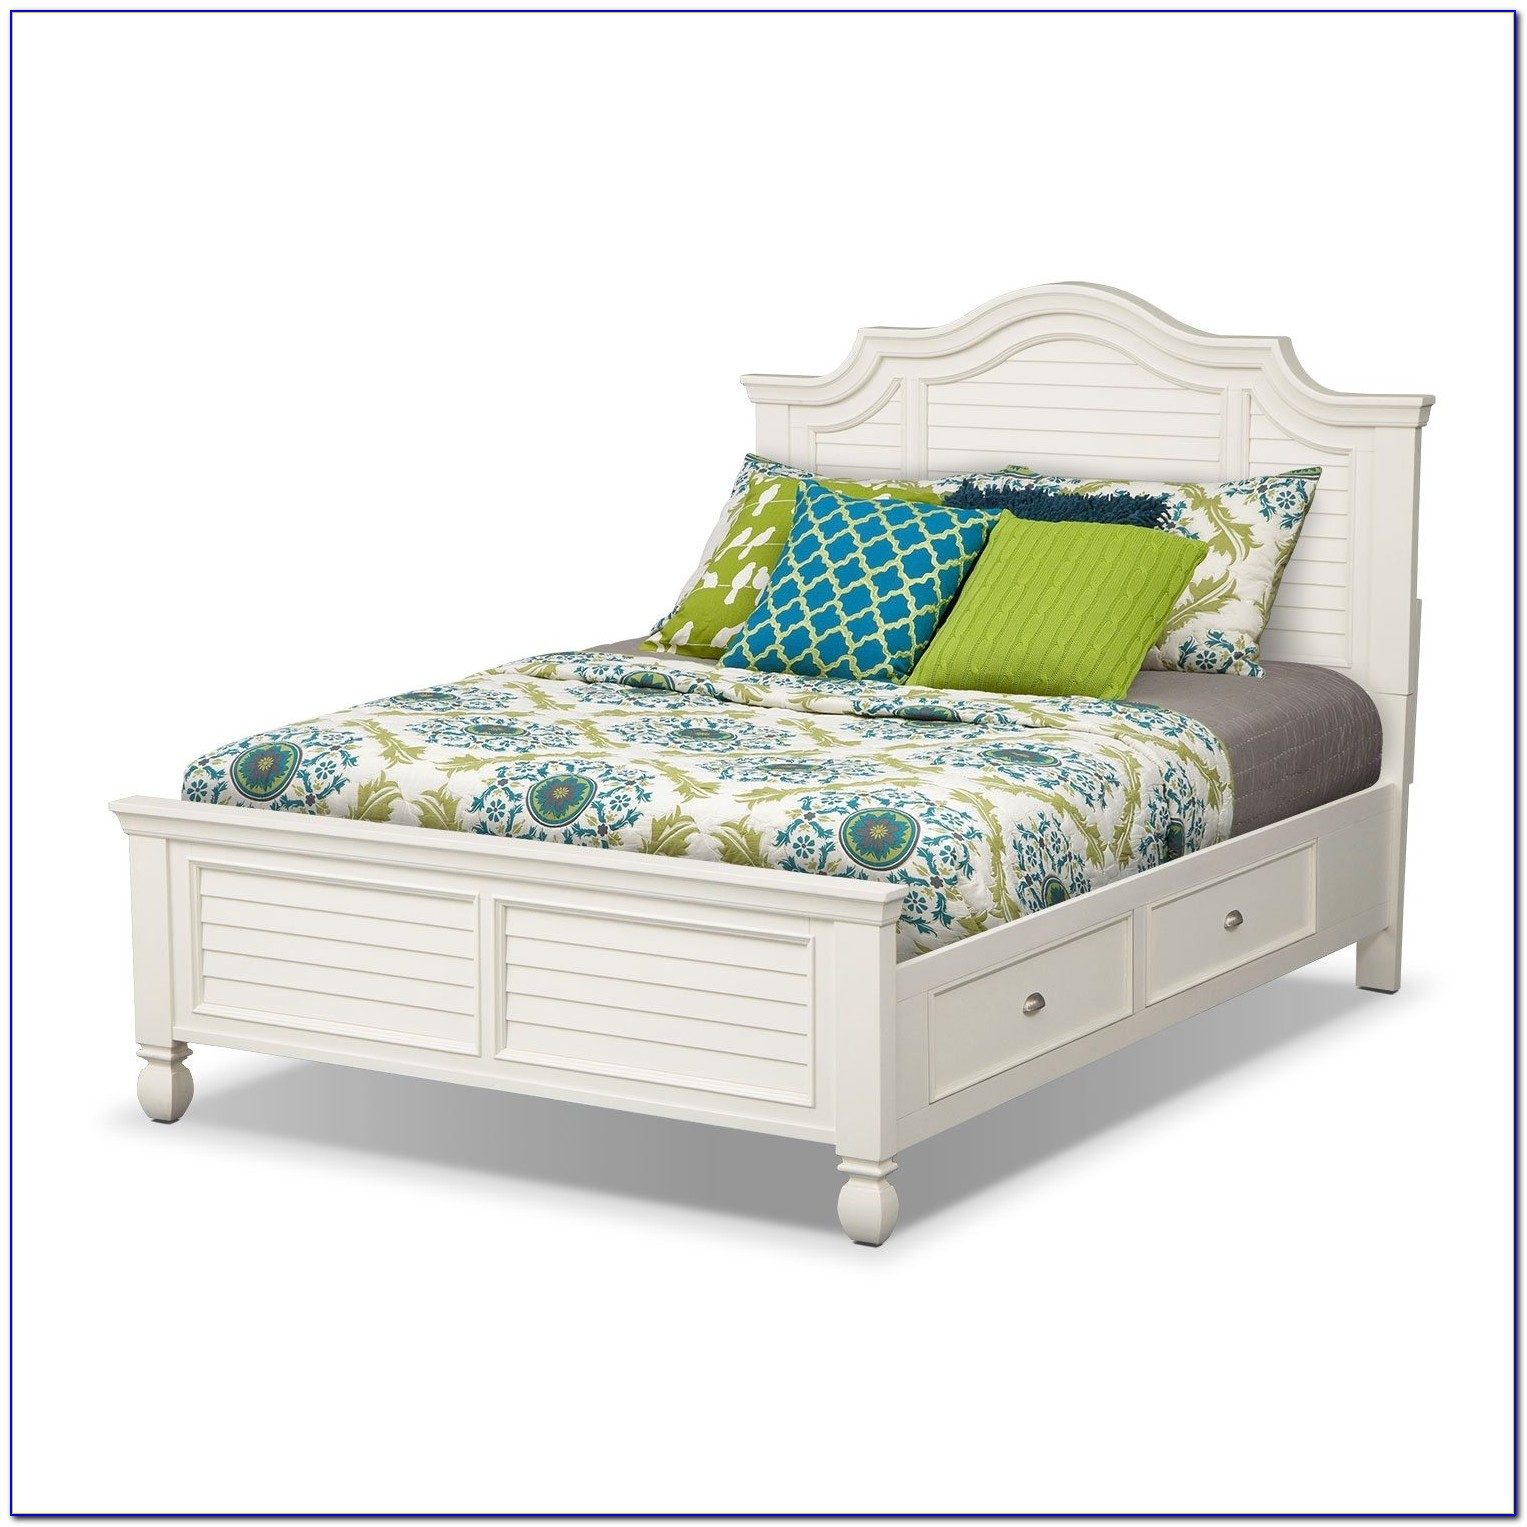 White Plantation Style Bedroom Furniture